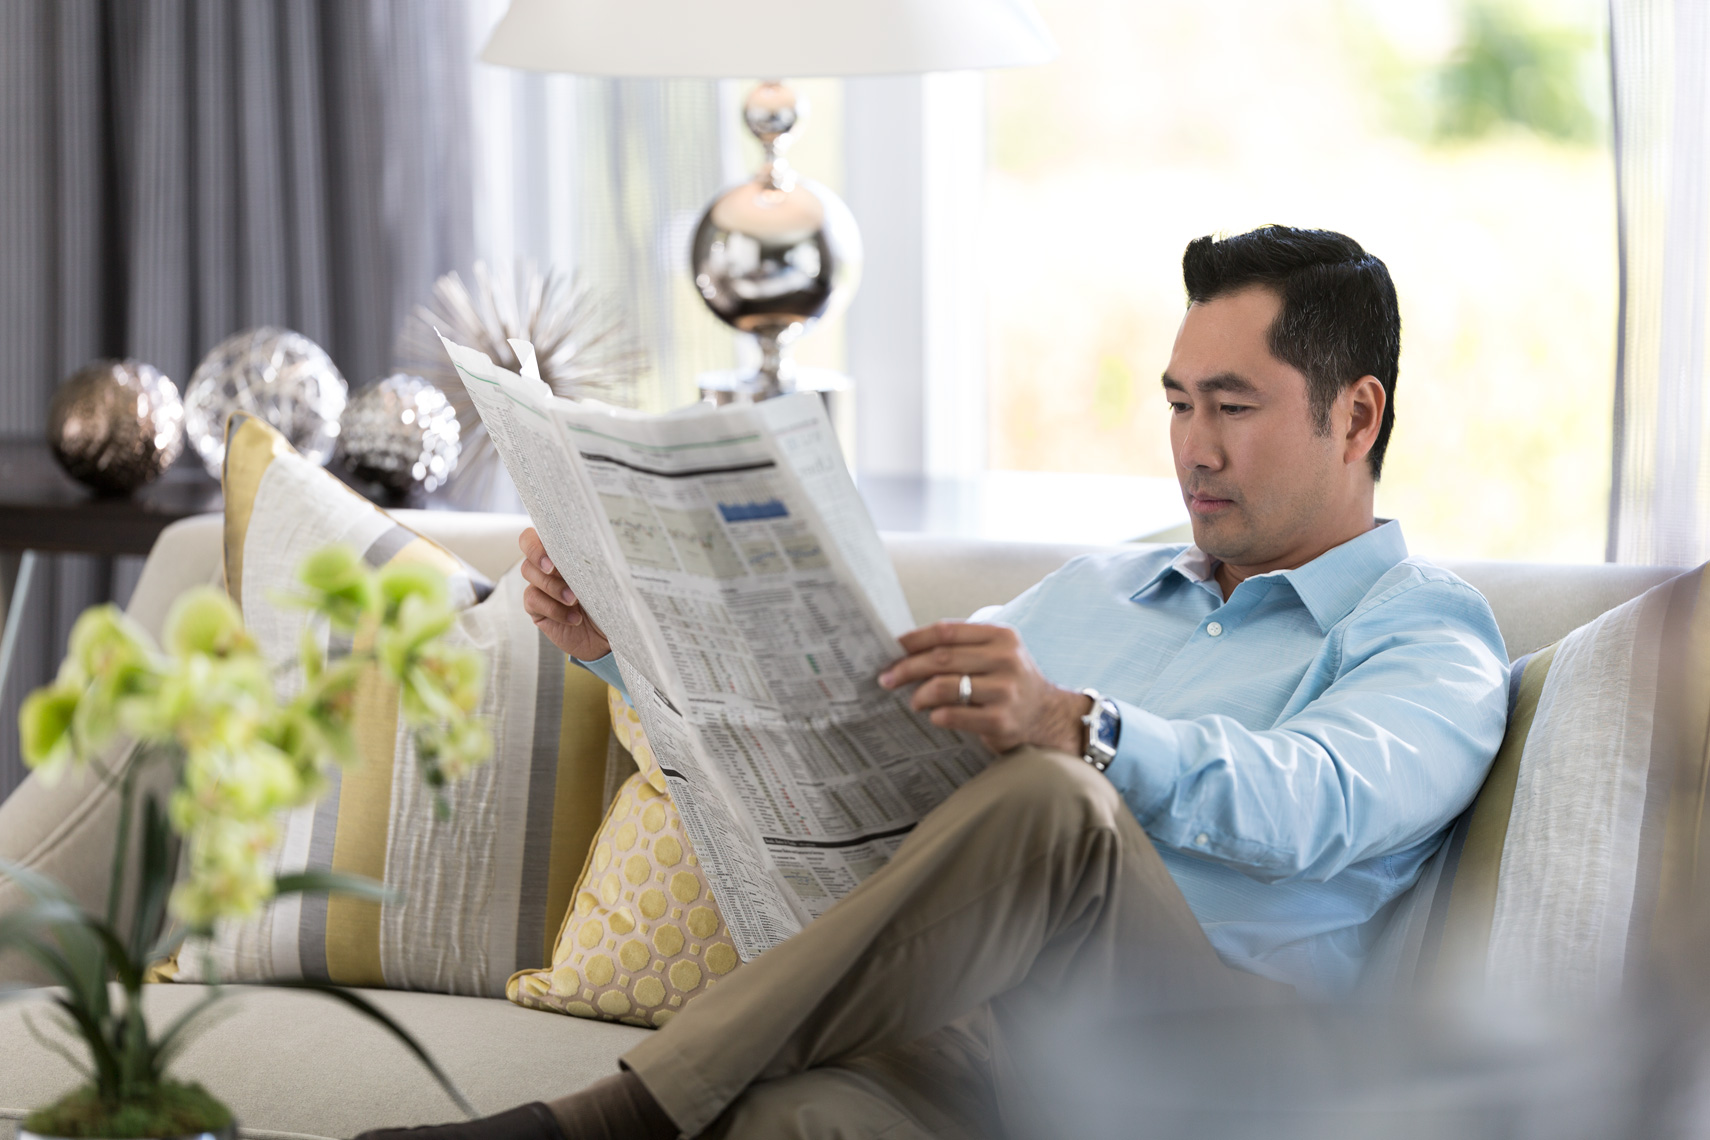 San Francisco Bay Area Advertising, Lifestyle, Commercial Photographer, asian man in the living room on a sofa couch reading newspaper at home